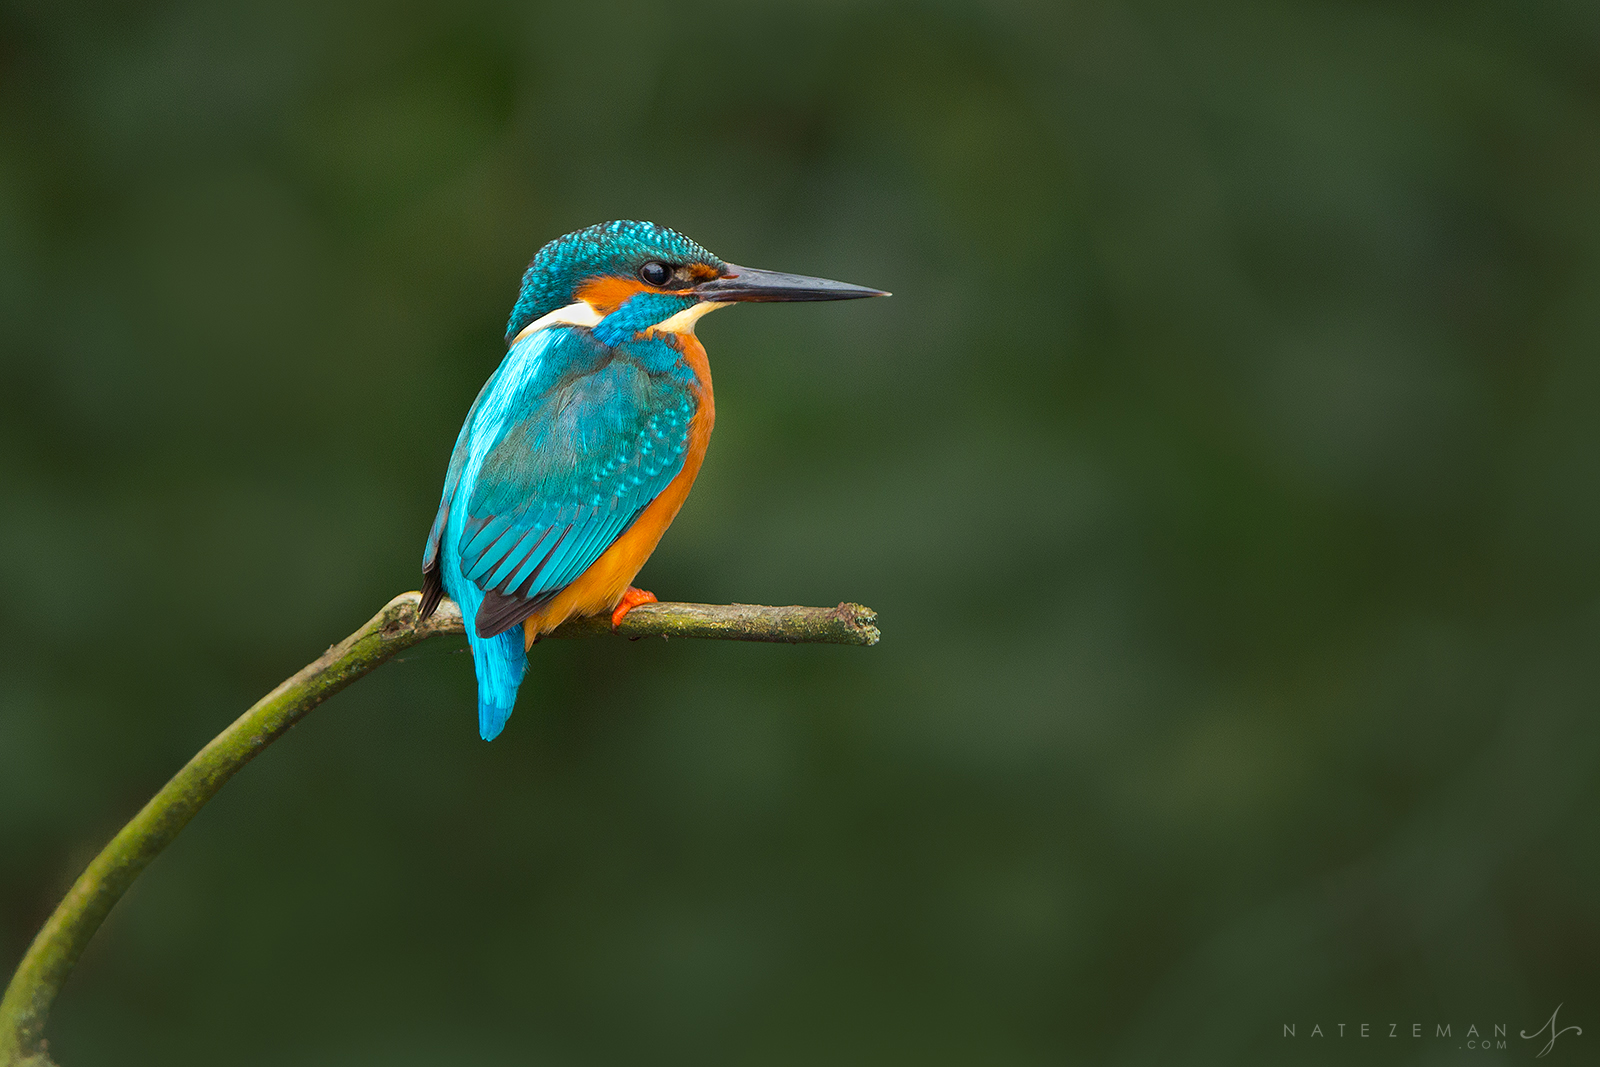 kingfisher, england, uk, st albans, river ver, common, king, fisher, bird, photo